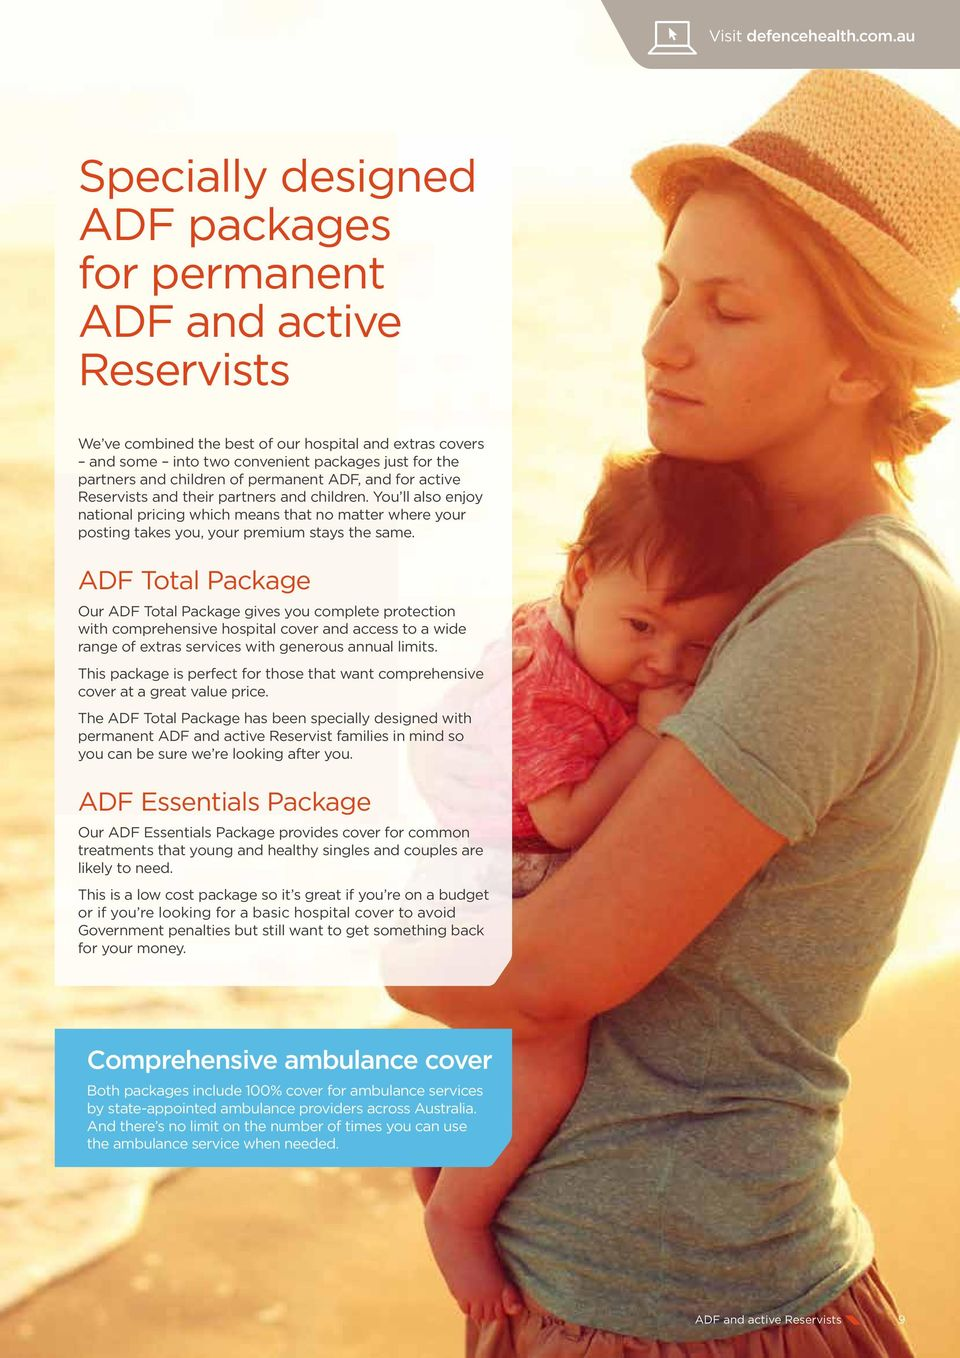 children of permanent ADF, and for active Reservists and their partners and children.